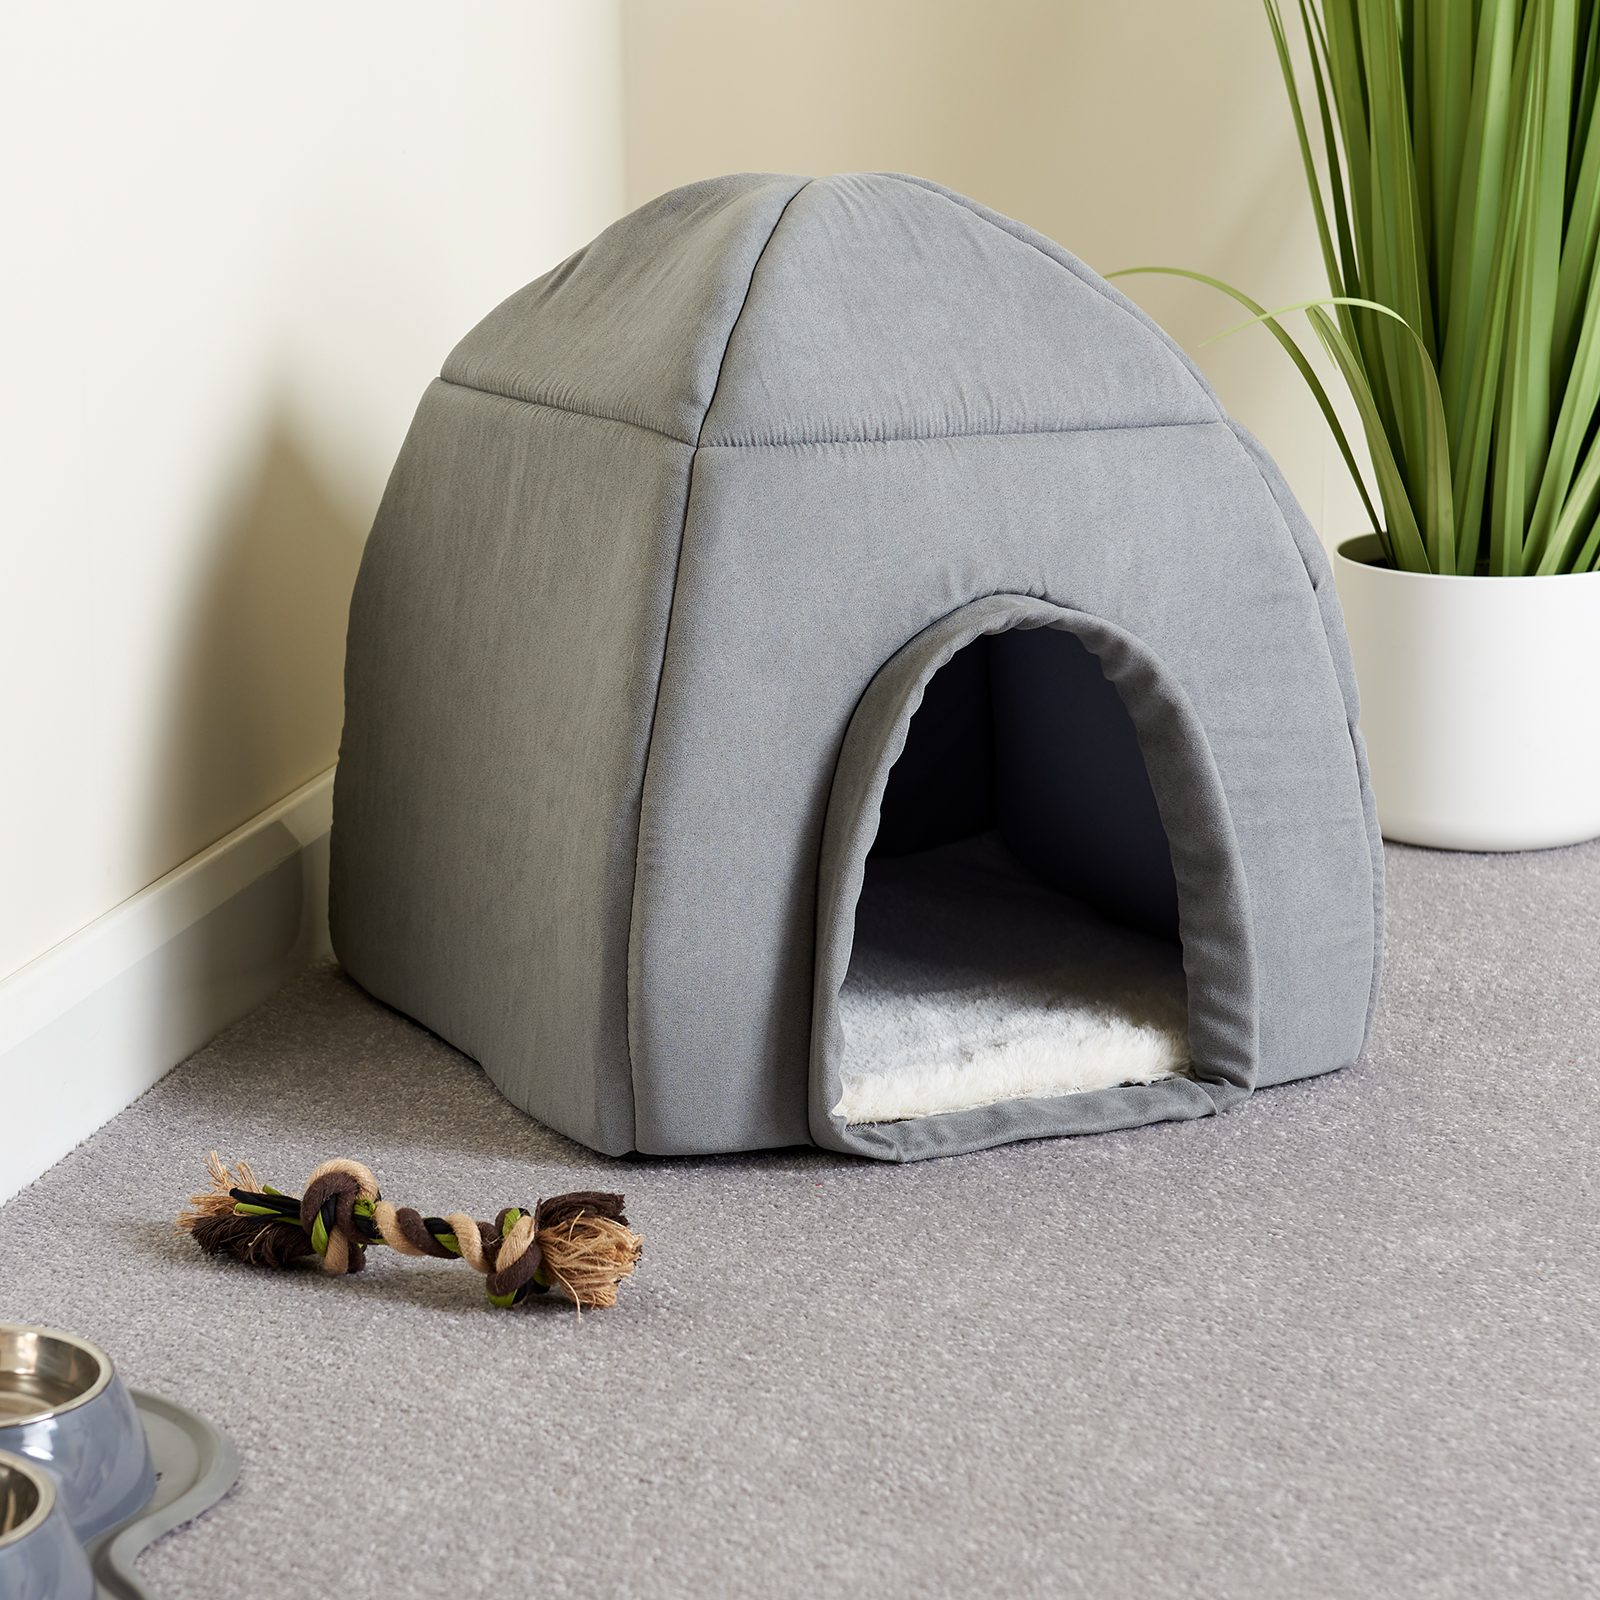 Me Amp My Super Soft Large Grey Cat Dog Igloo Pet Bed Warm